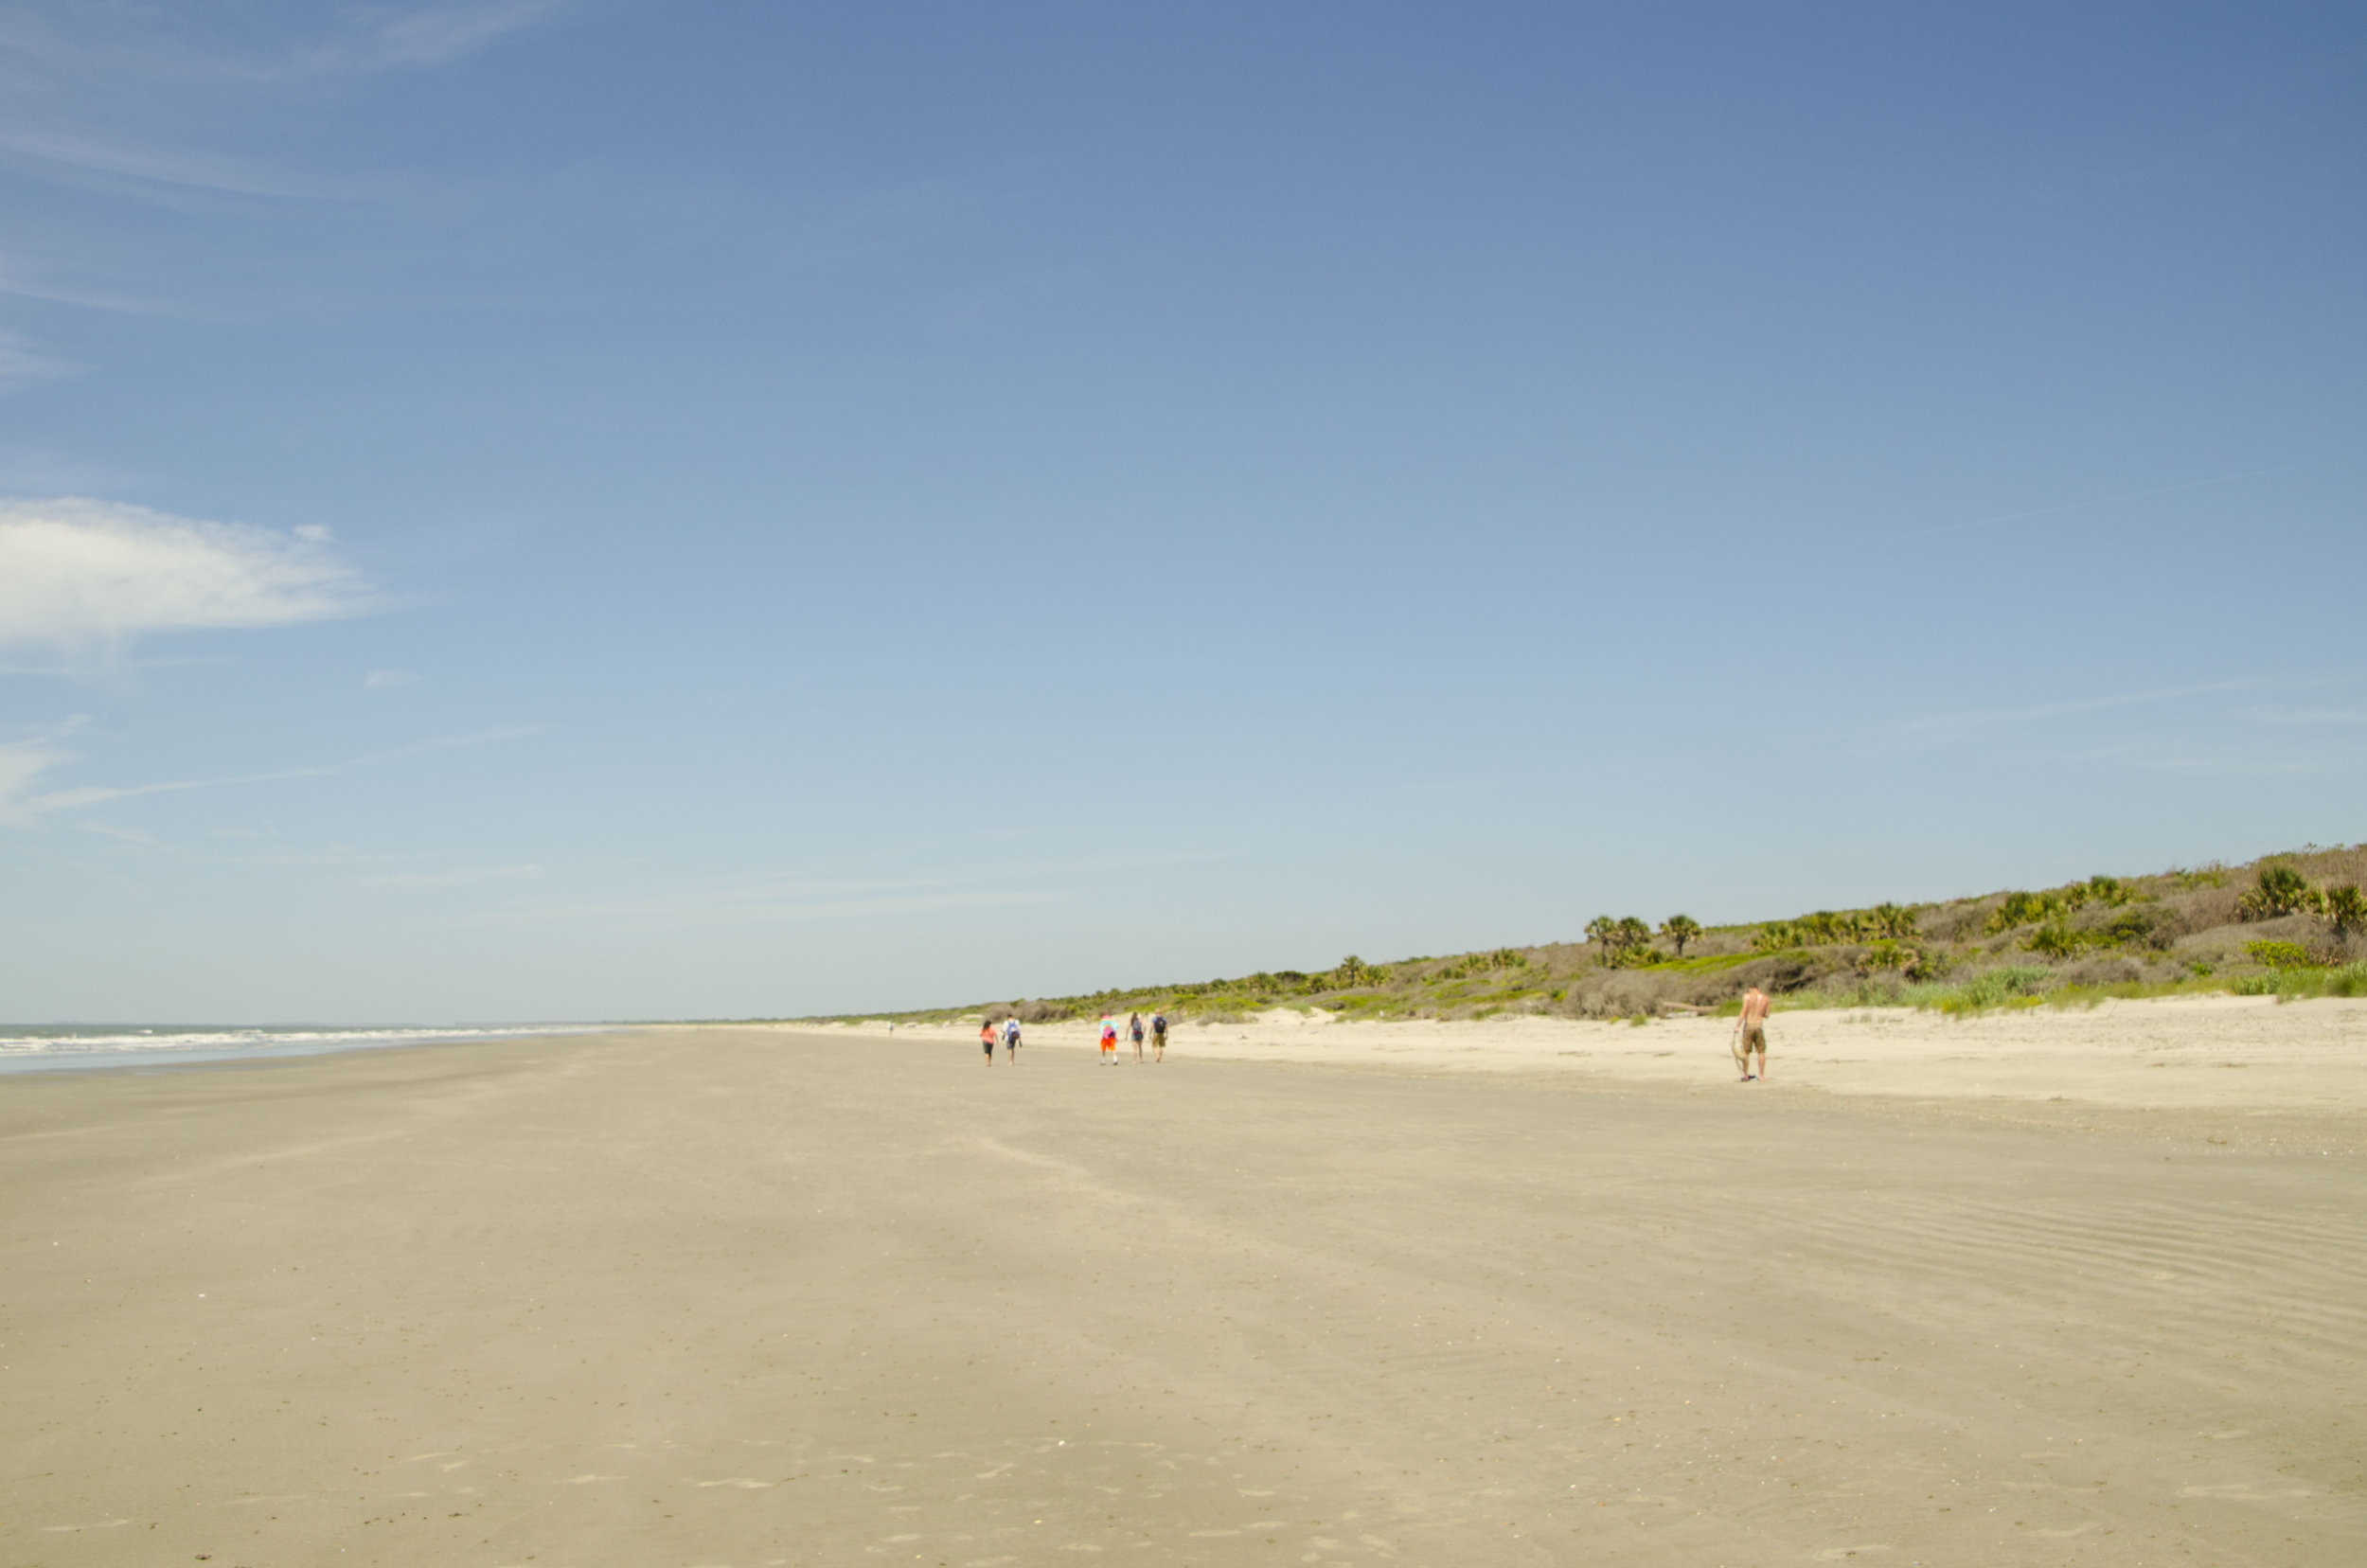 These folks are headed south on the beach, the best area to fund shells.